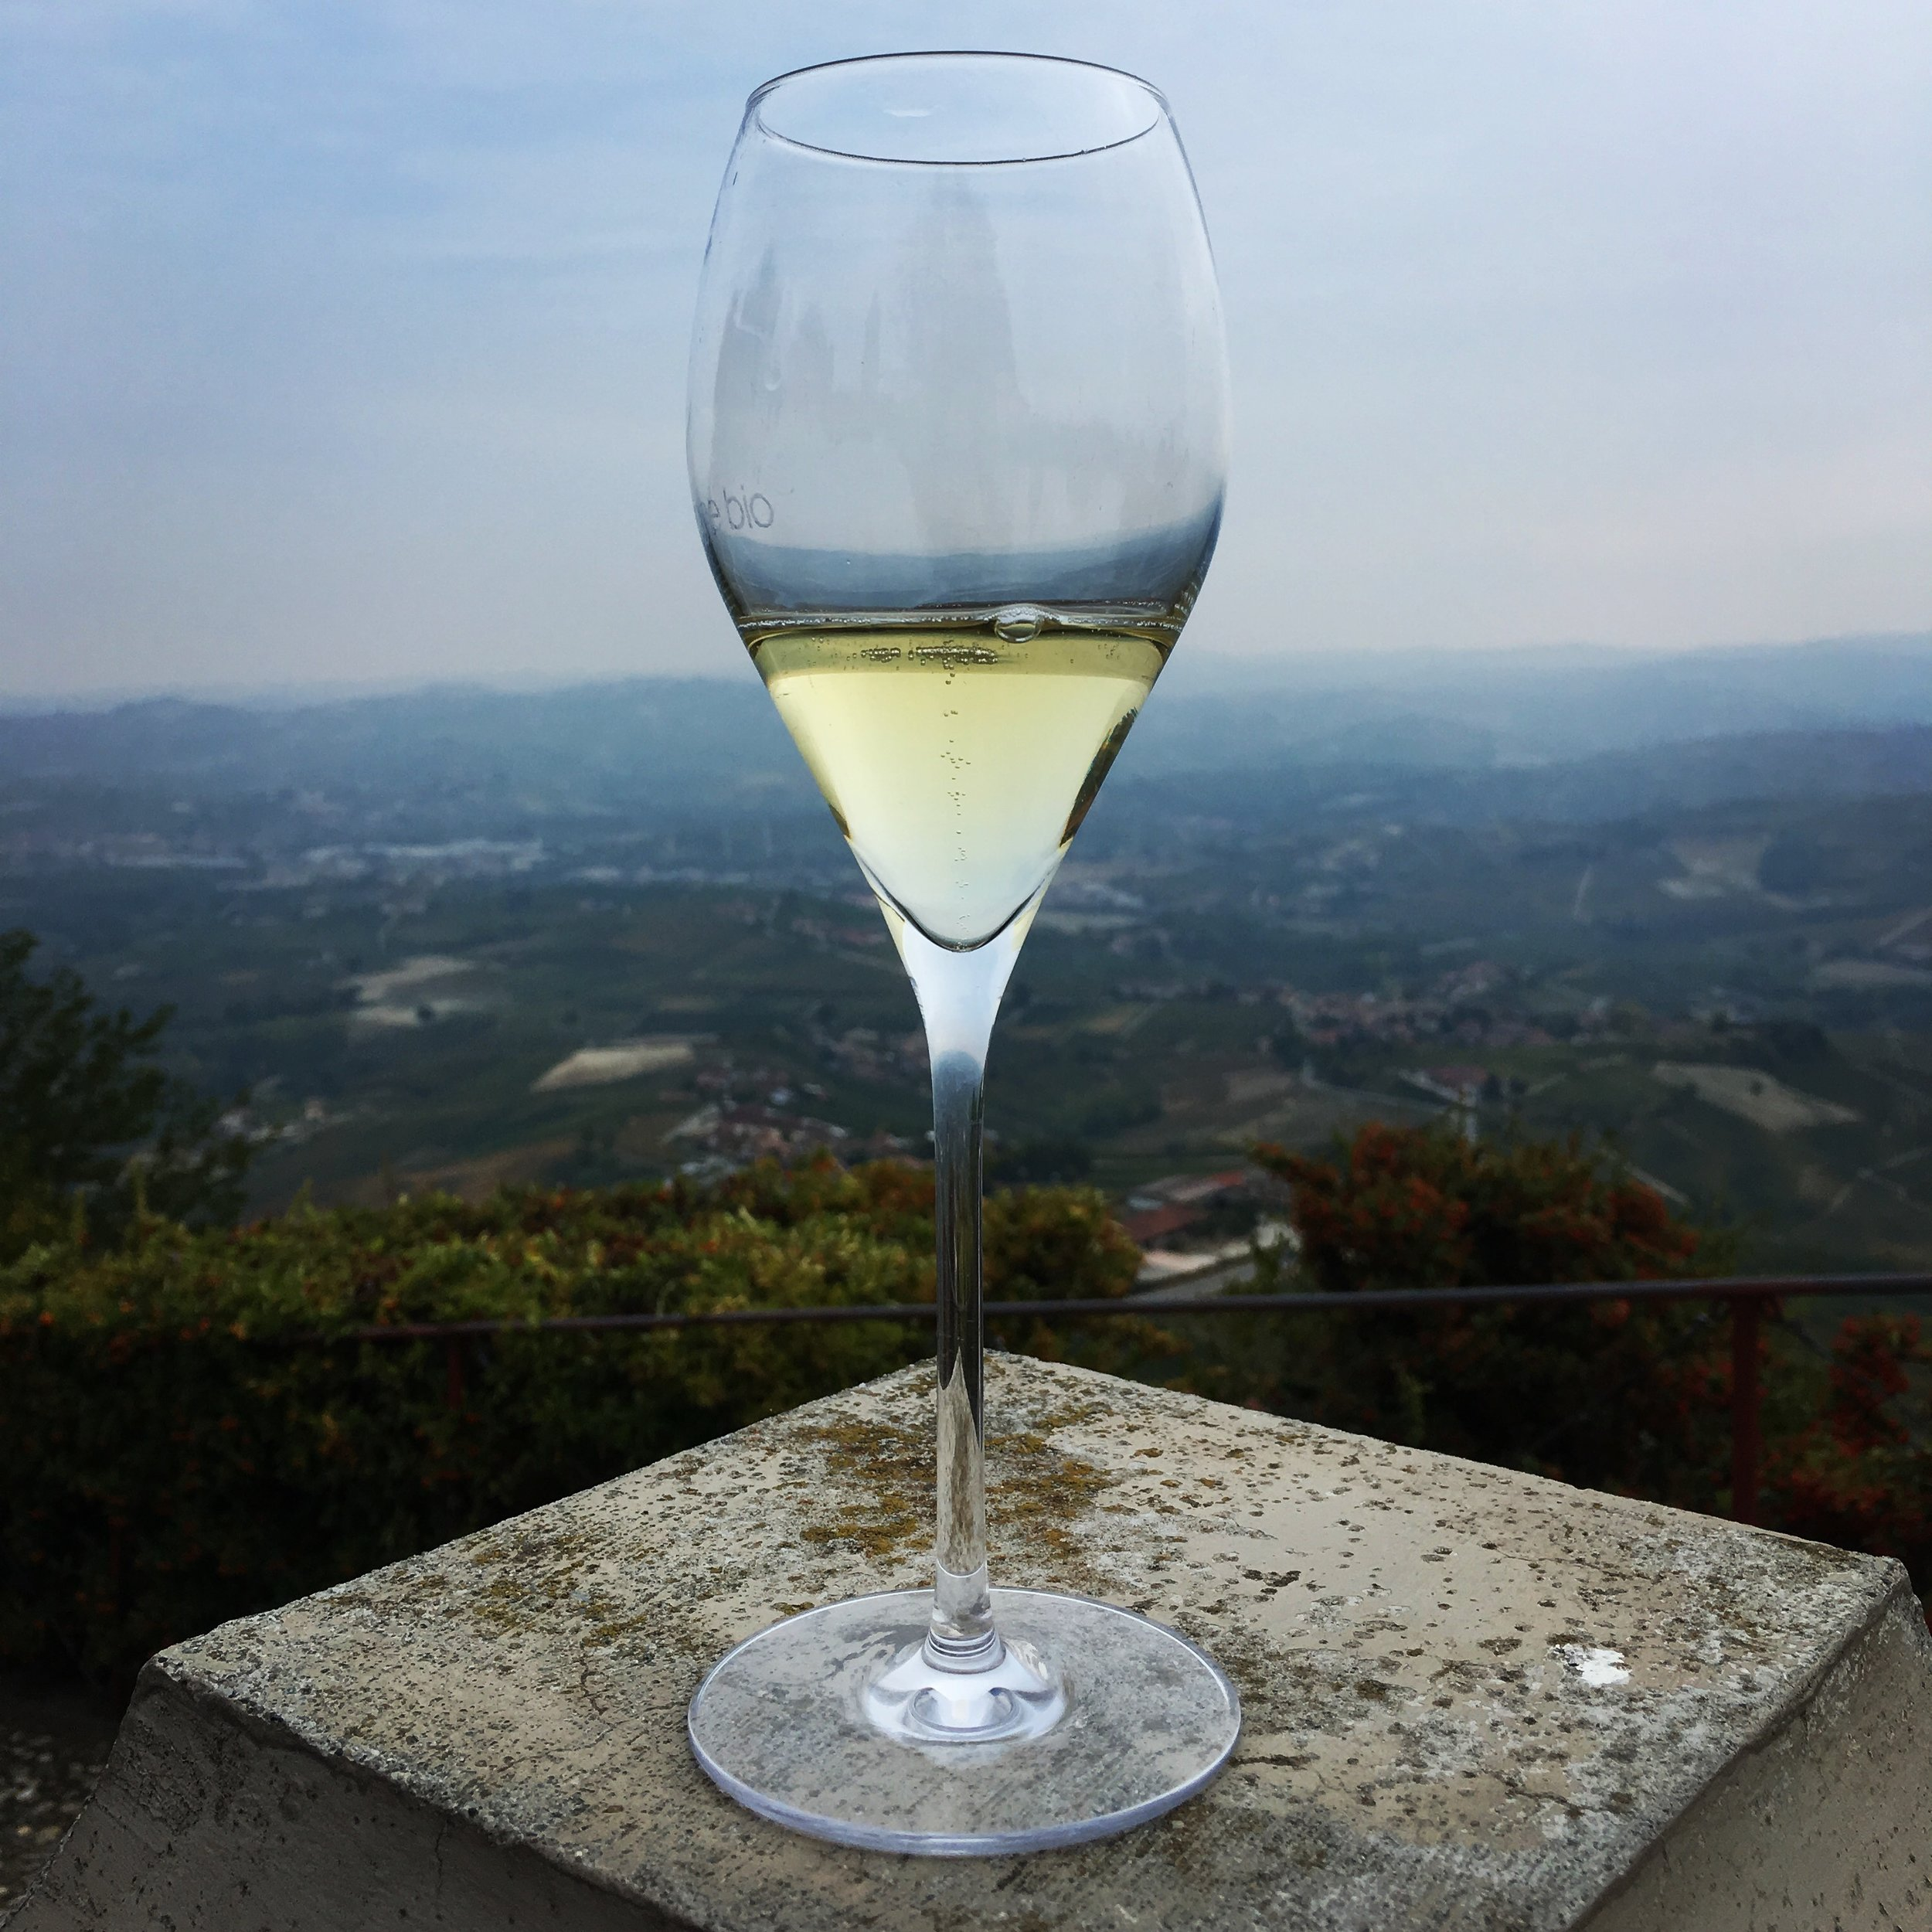 Try-new-wine-in-Italy_La-Dolce-Vigna_1